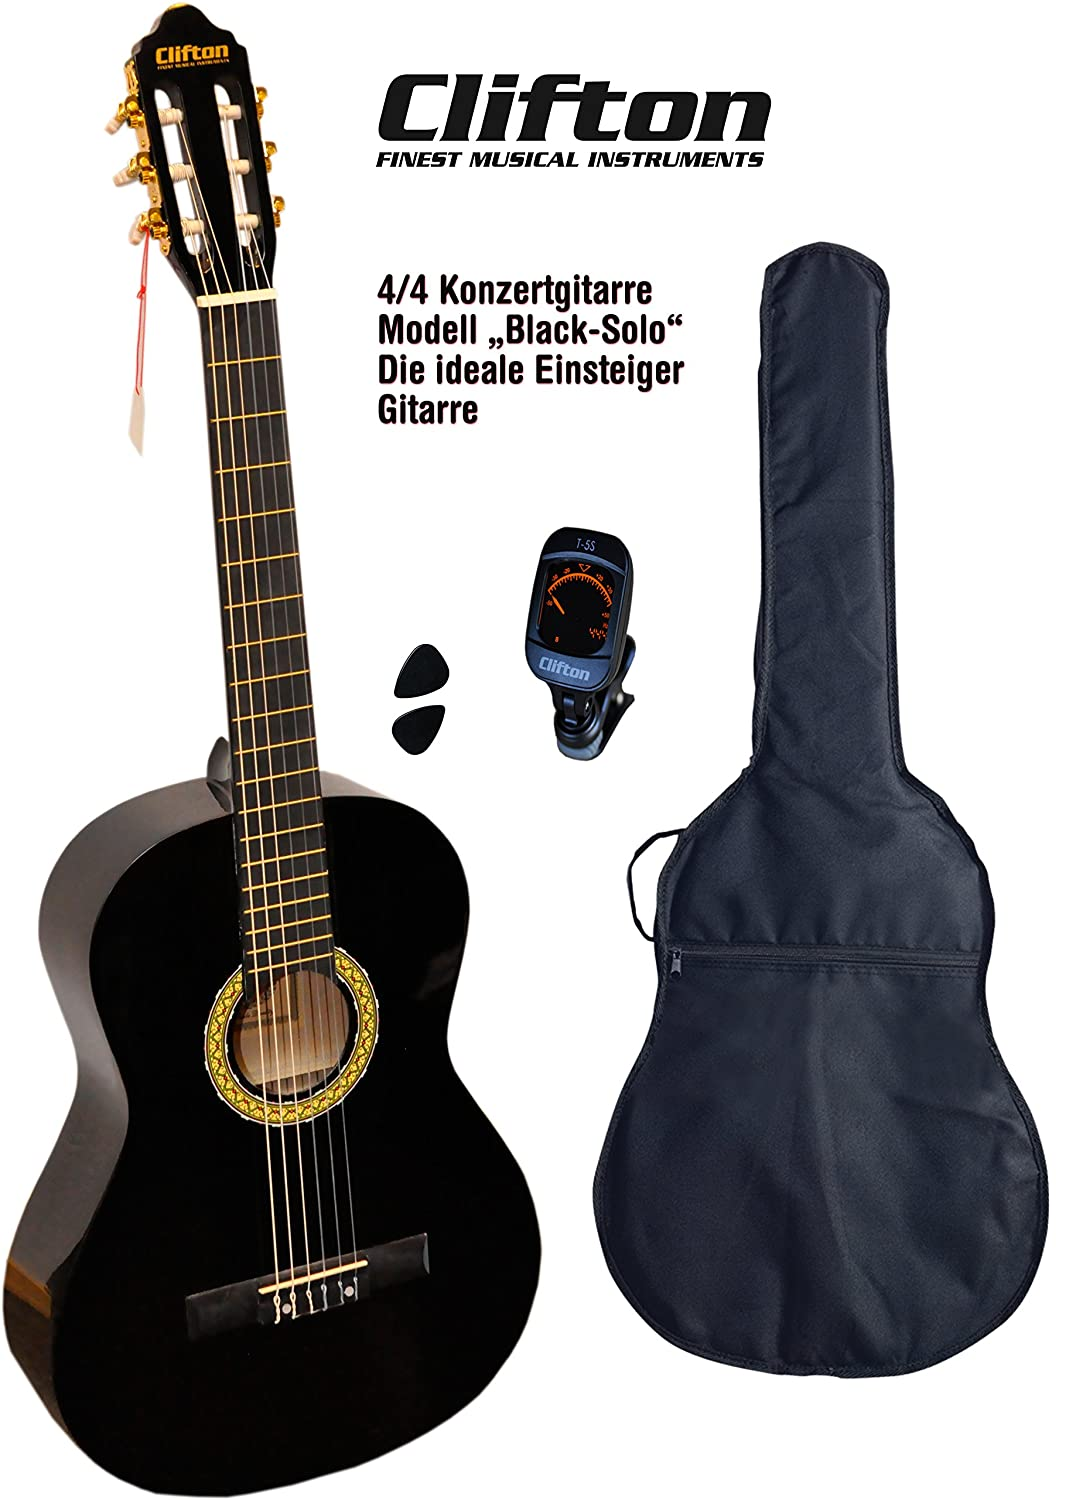 Clifton 4 4 guitarra de concierto Black solo funda acolchada Afinador Digital Con rückengarniture: Amazon.es: Instrumentos musicales